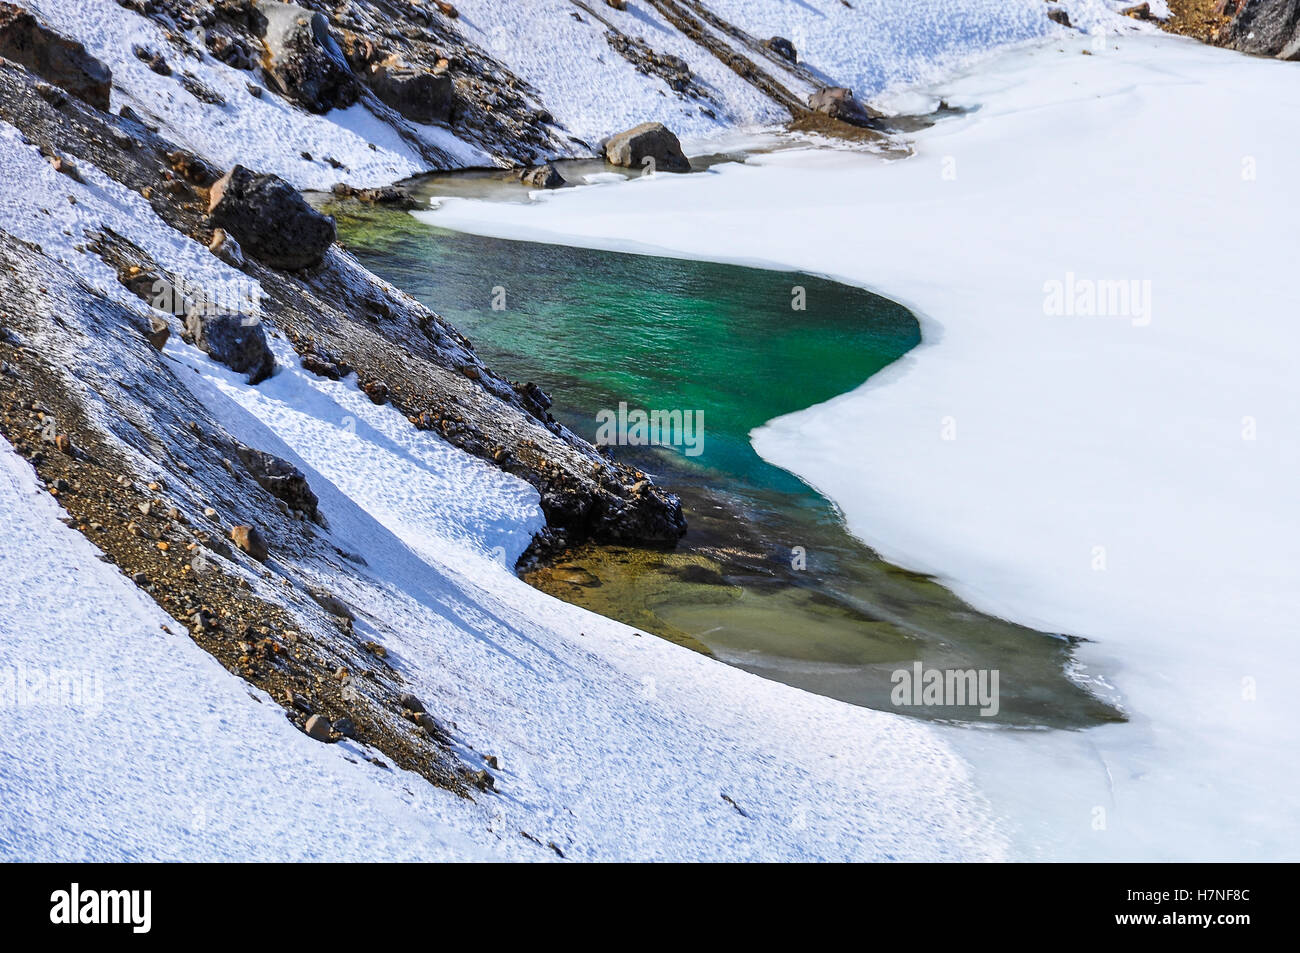 Bunte Emerald Lakes im Winter Tongariro Alpine Crossing, Neuseeland Stockbild